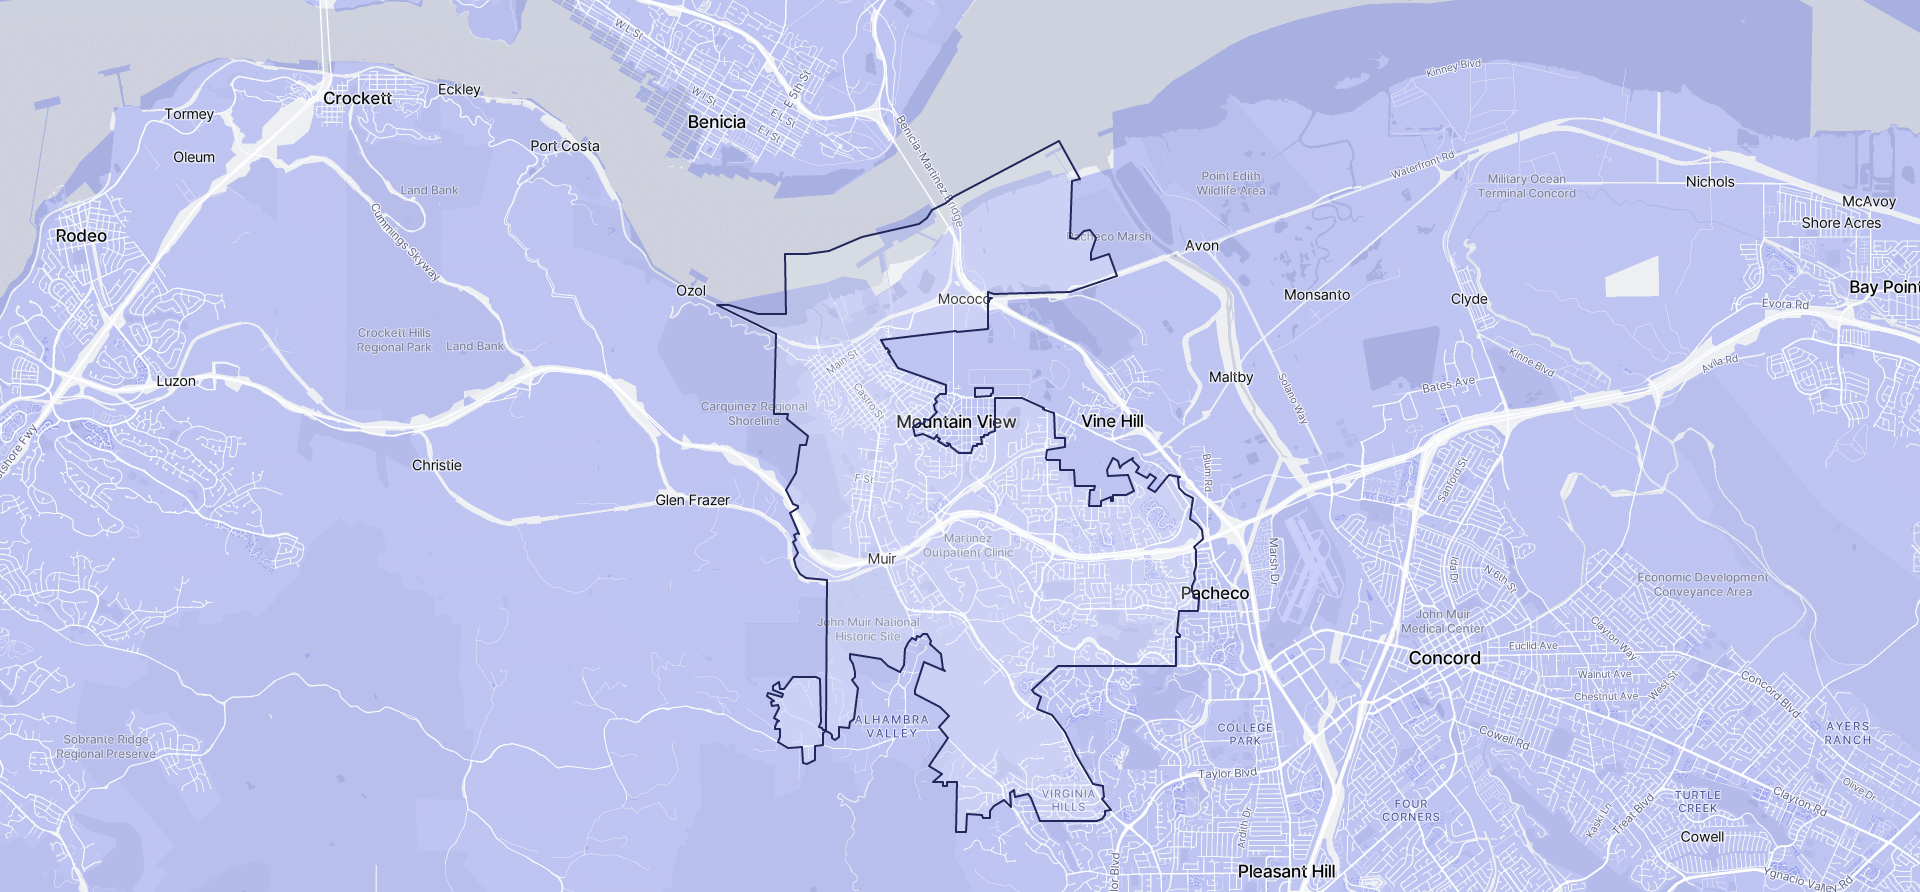 Image of Martinez boundaries on a map.